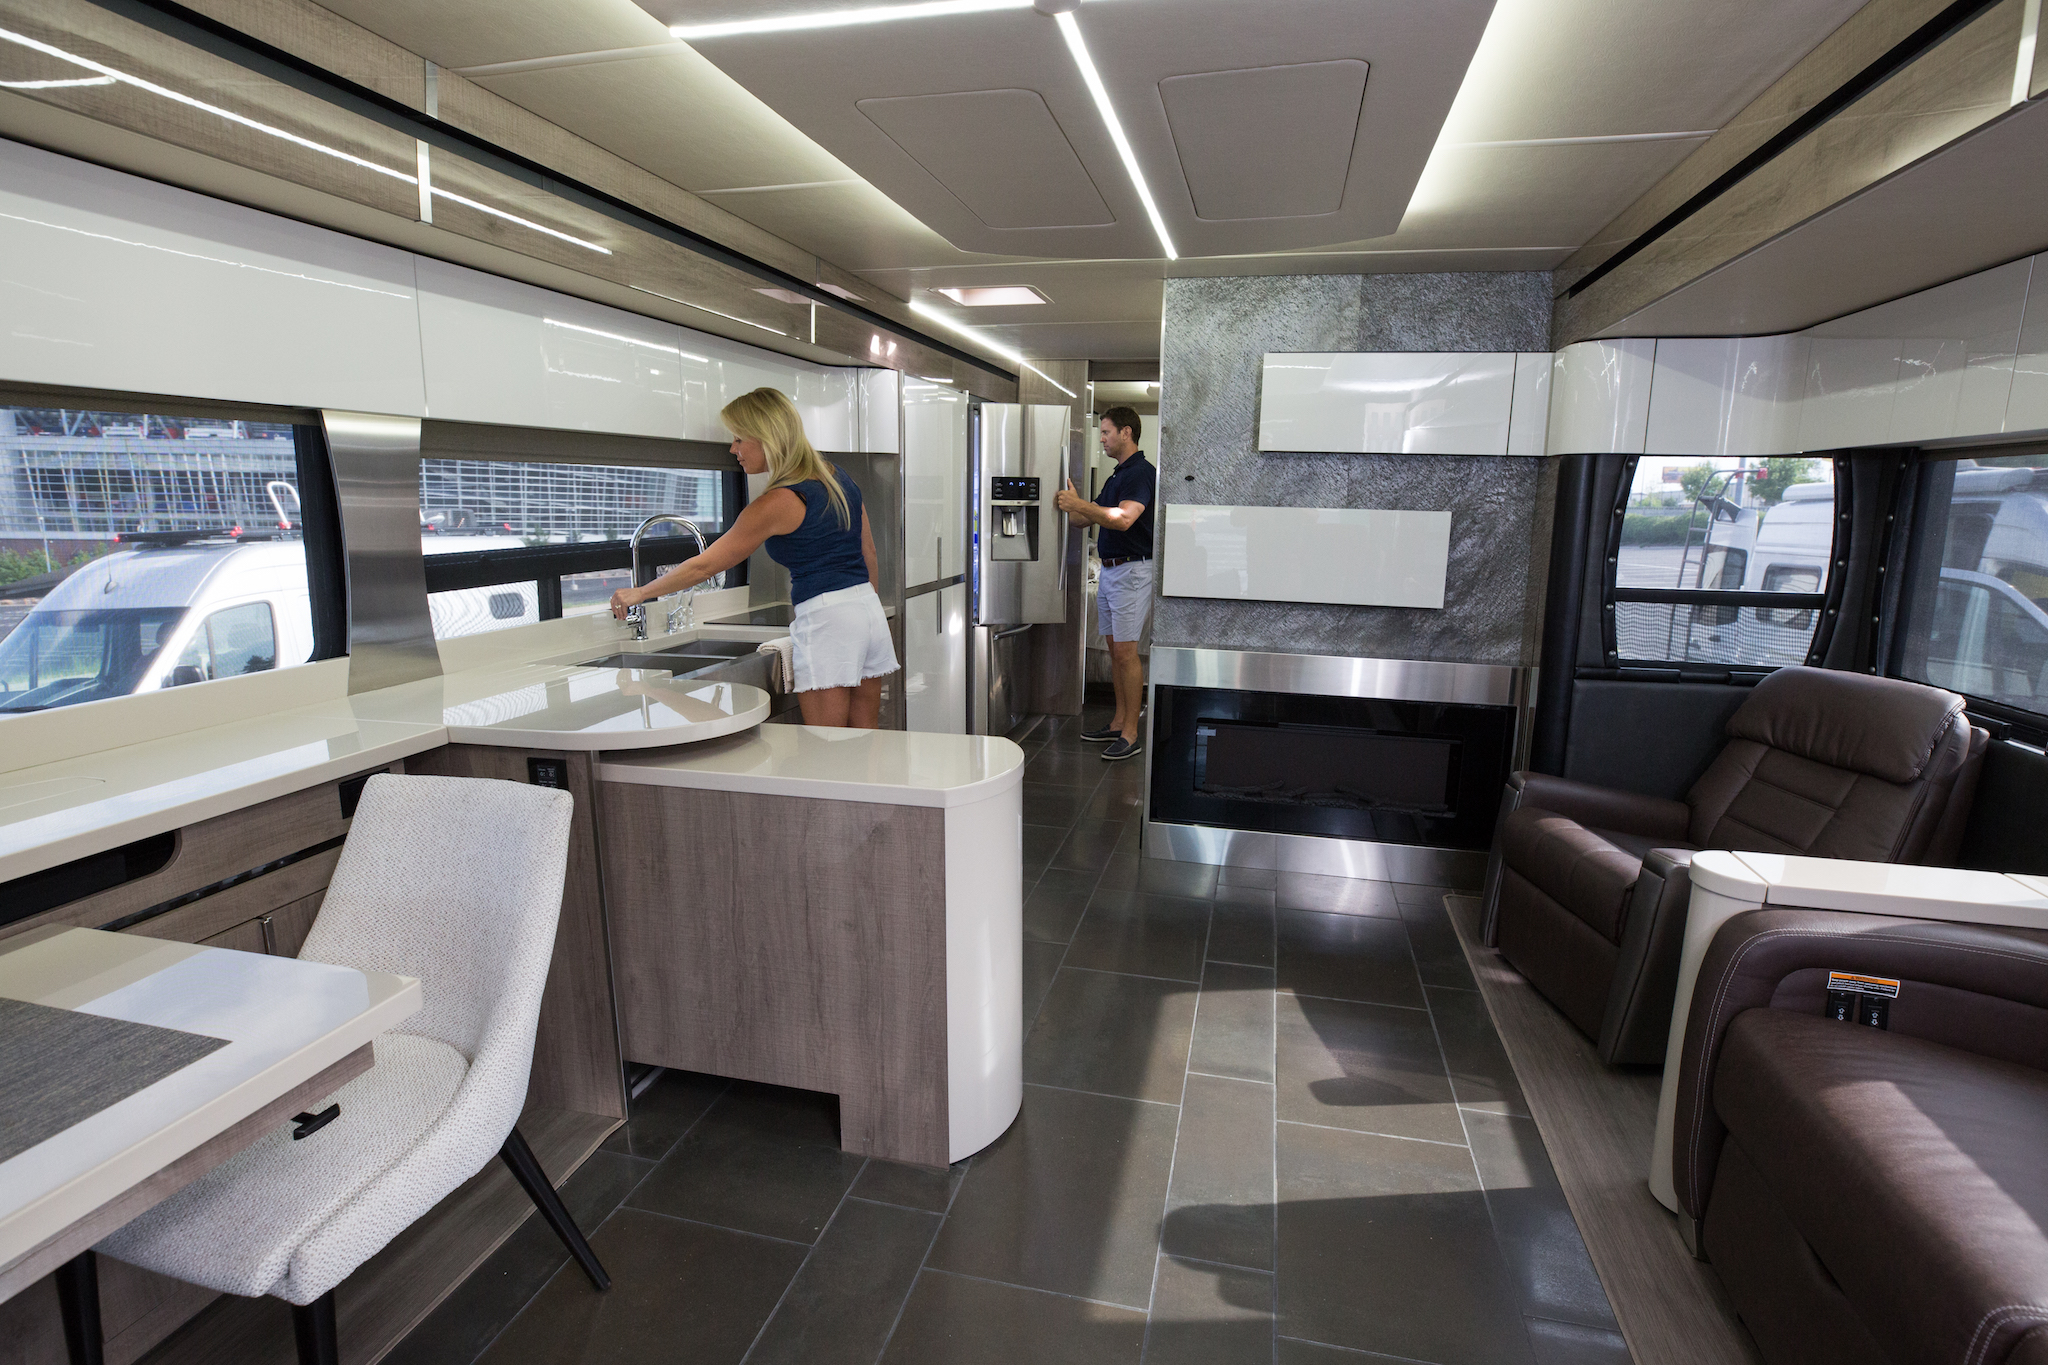 Woman at the kitchen sink and man looking in the fridge of a modern Winnebago Horizon.